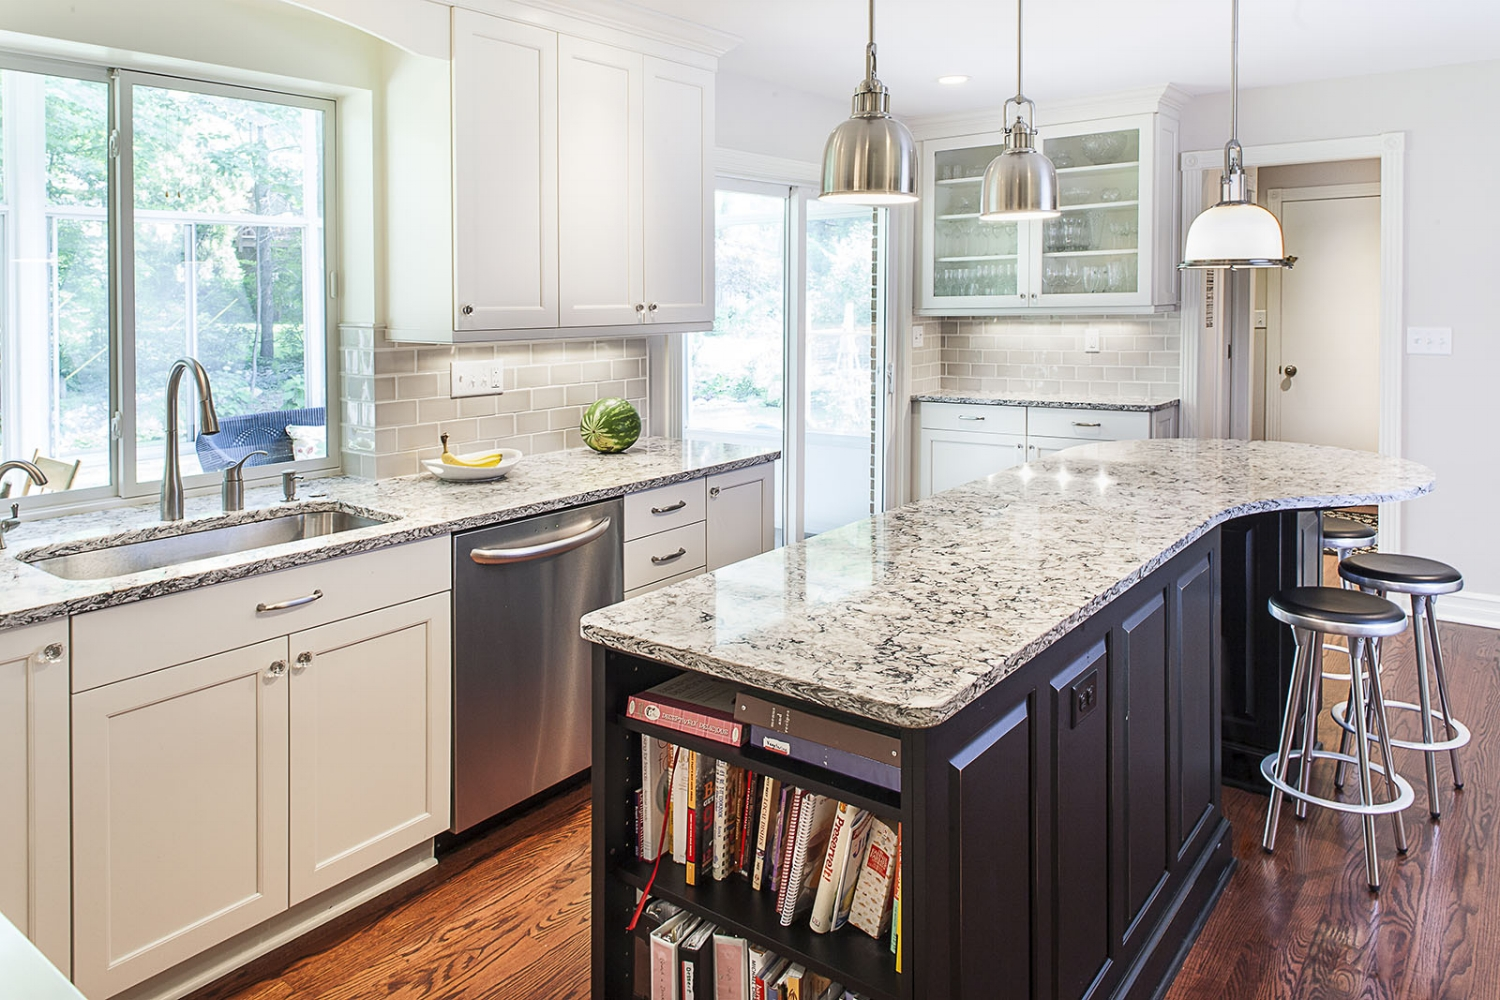 10 Specialty Kitchen Cabinets and Accessories For Home ...